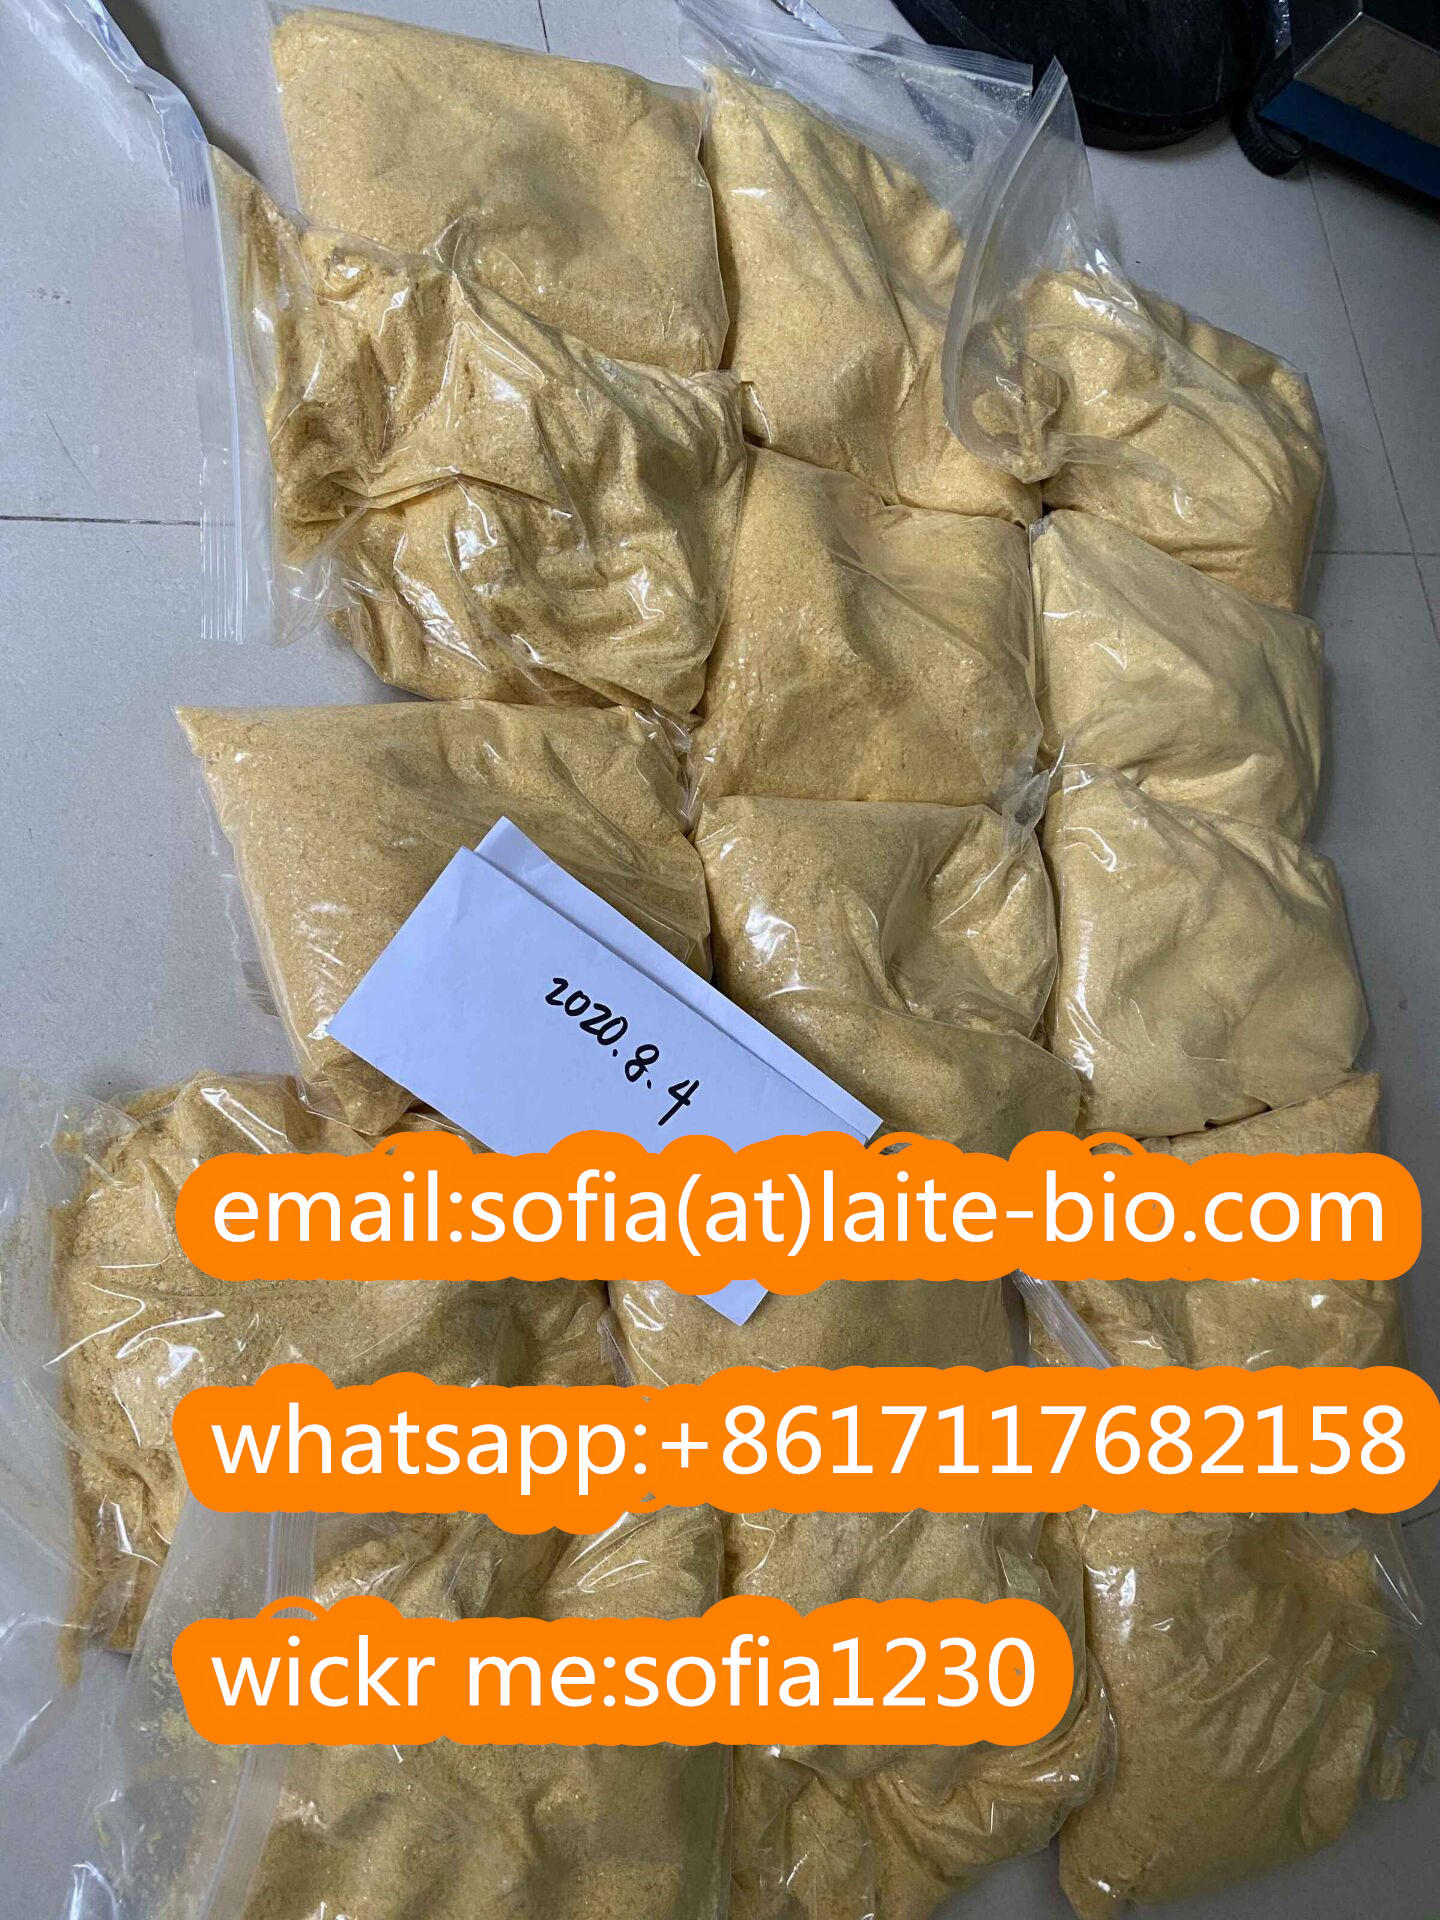 5f mdmb 2201 mdmb 2201 cannabinoid best price in stock(whatsapp:+8617117682158)